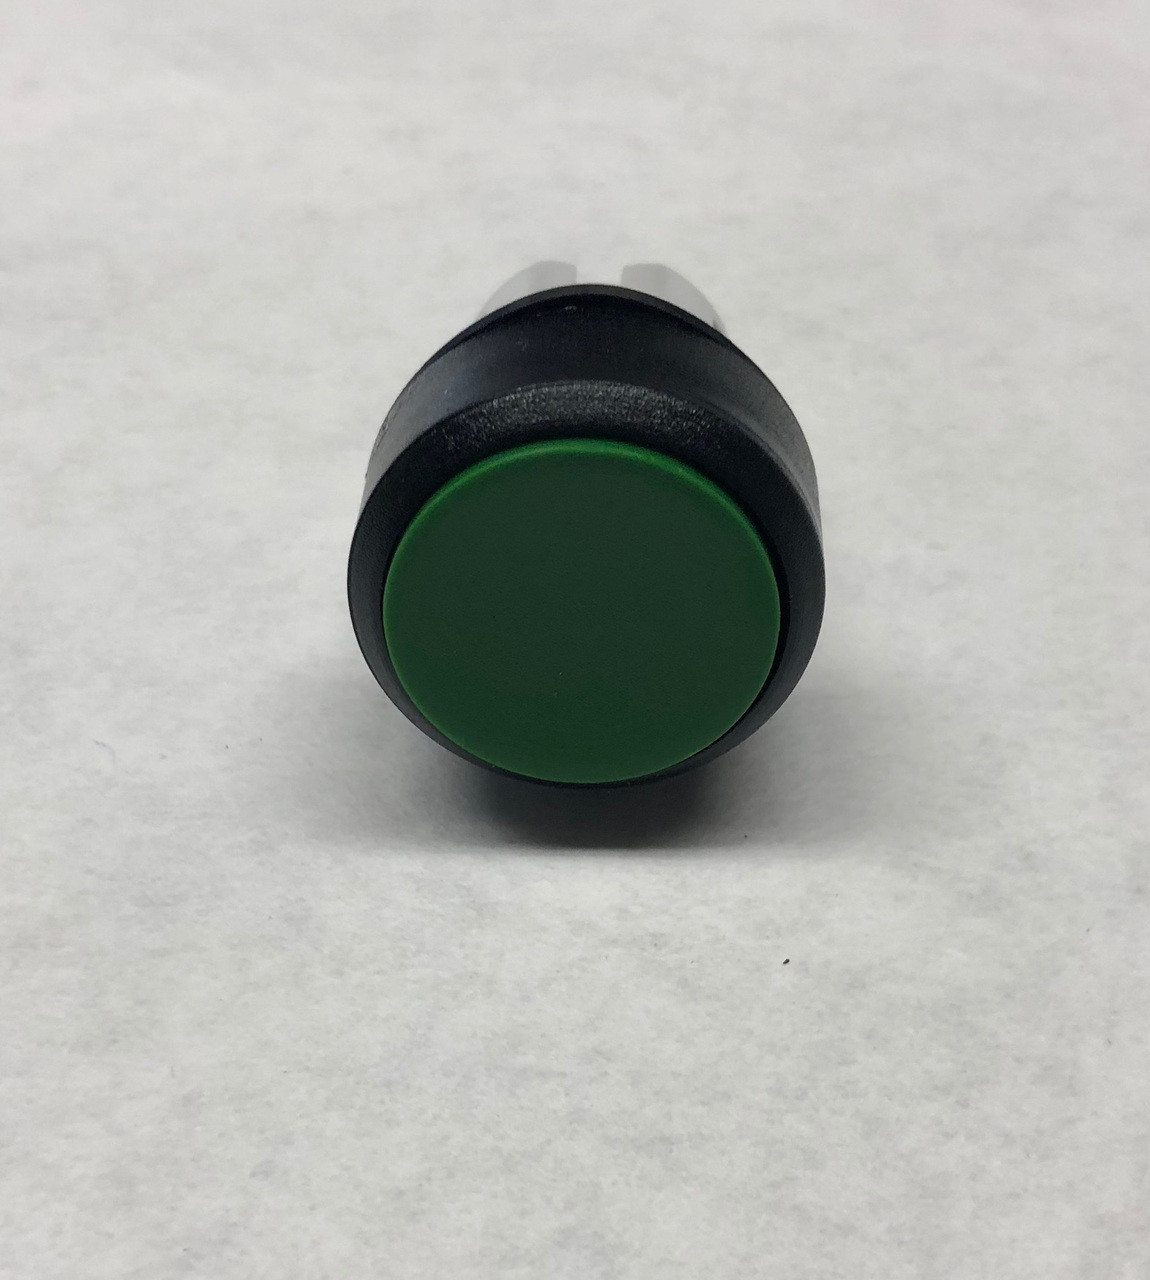 TorRey Model M32 - Green Button - 05-02261